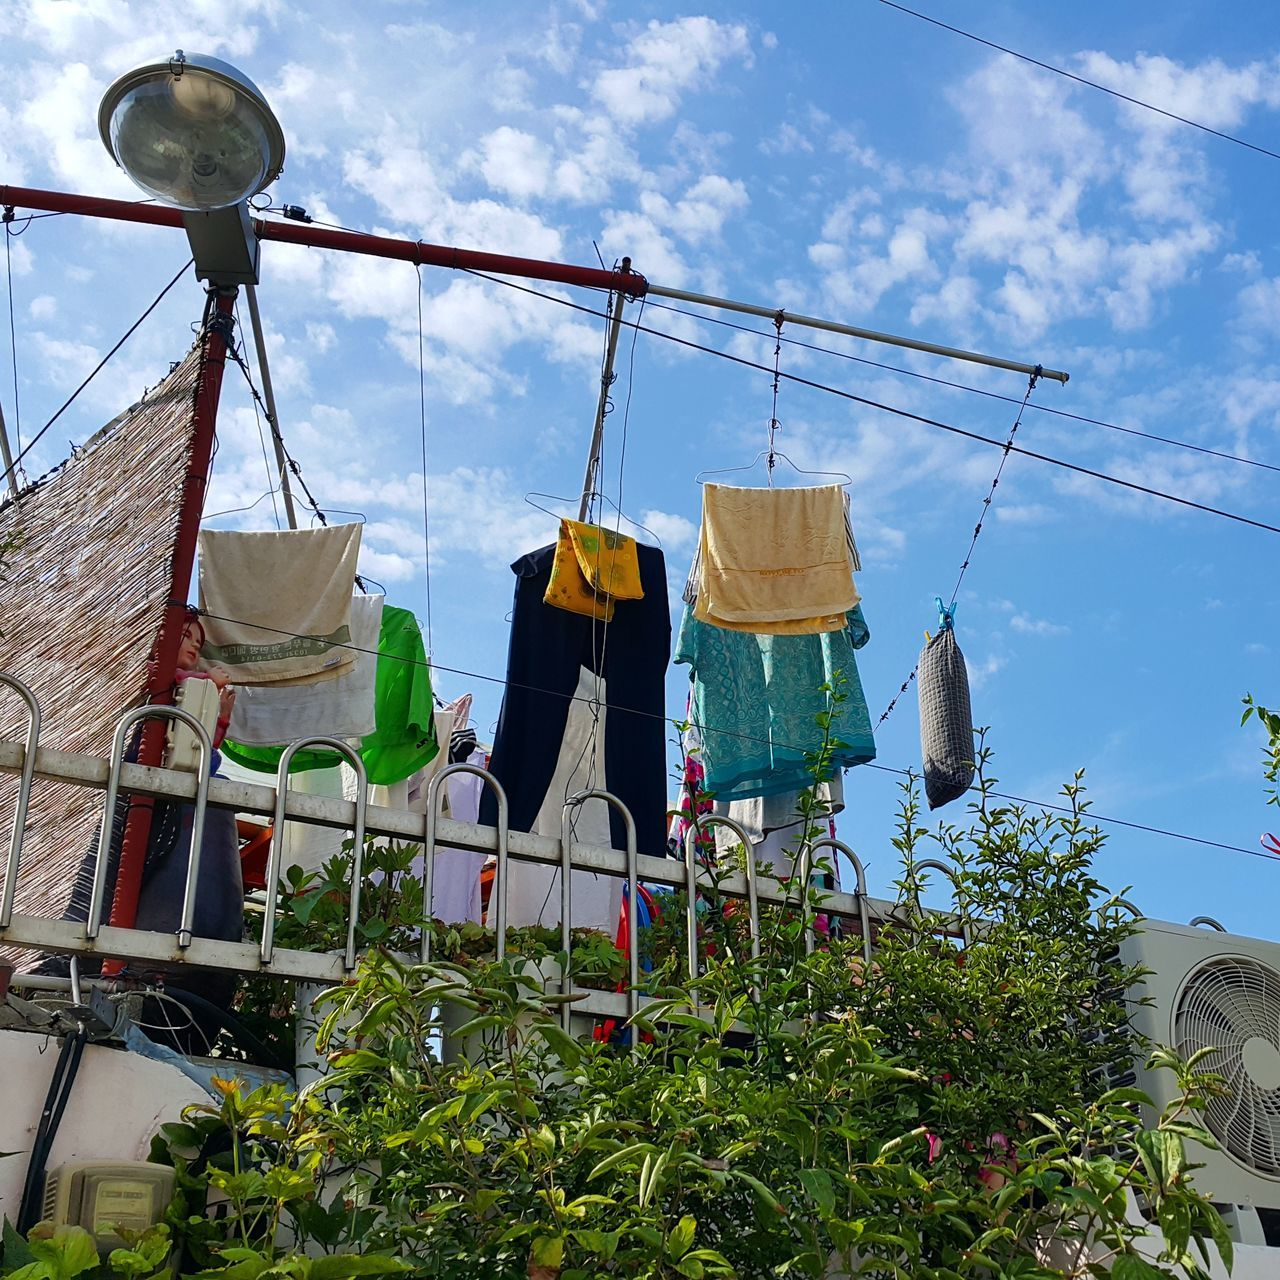 hanging, clothesline, sky, clothing, drying, laundry, building exterior, day, built structure, low angle view, architecture, outdoors, clothespin, no people, cloud - sky, growth, city